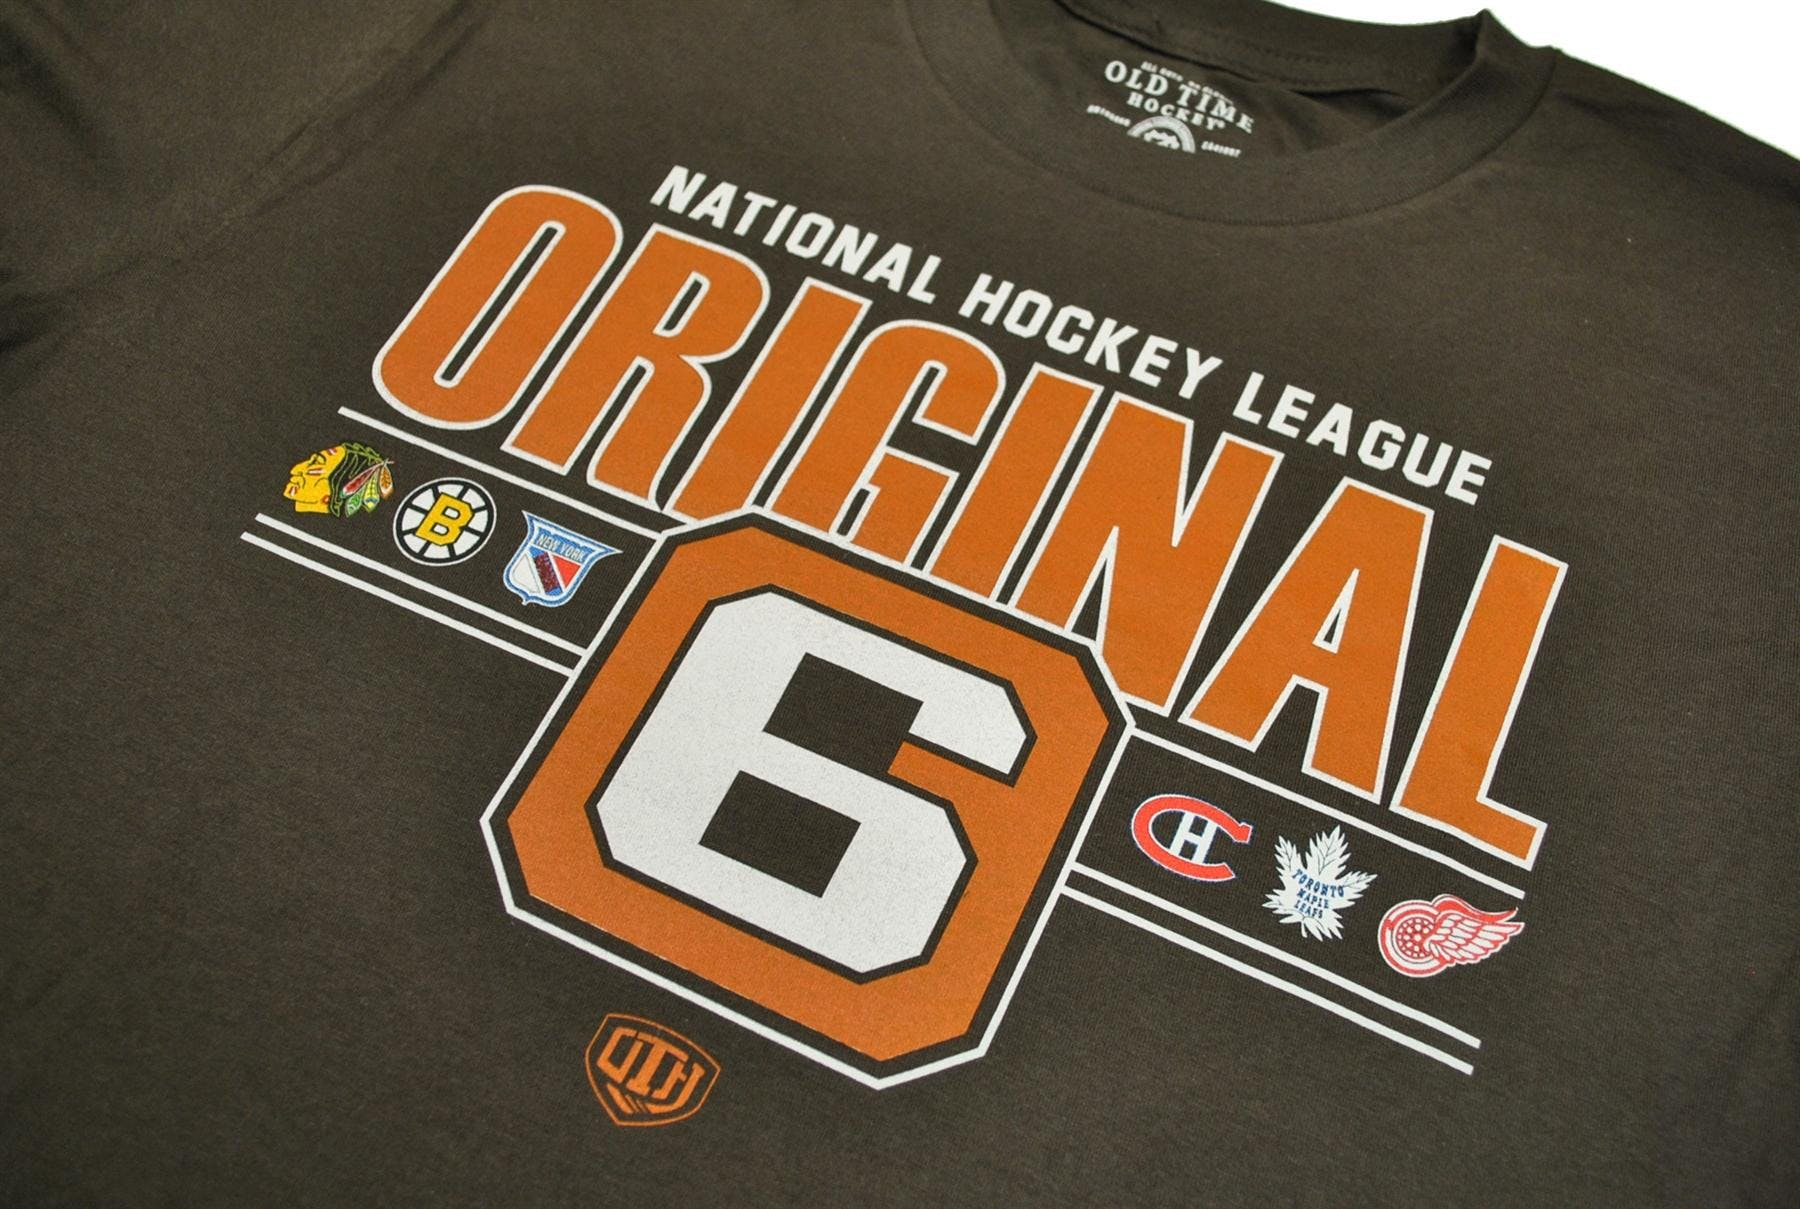 NHL Original 6 Logo Old Time Hockey Perkis Dark Chocolate Tee Shirt cc0323827